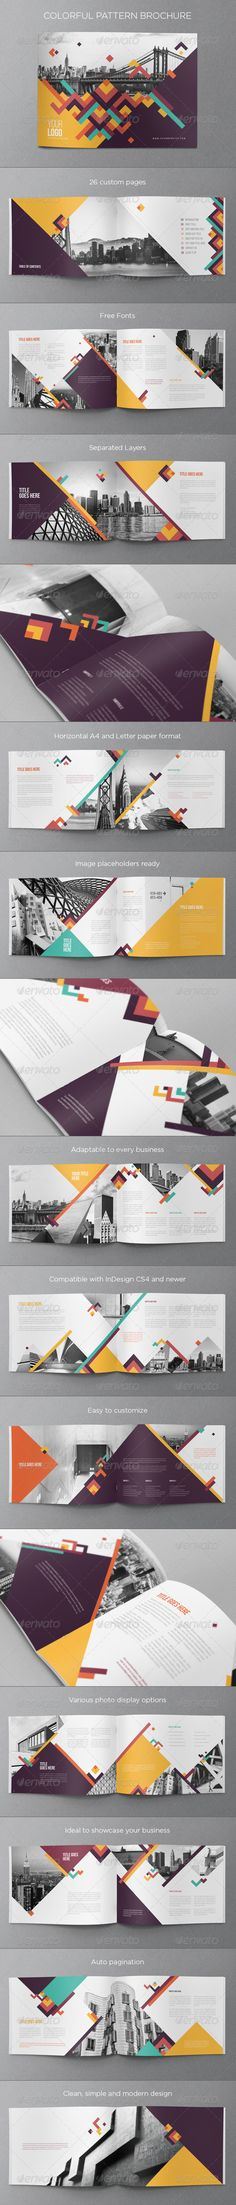 Buy Colorful Pattern Brochure by AbraDesign on GraphicRiver. COLORFUL PATTERN BROCHURE This brochure is an ideal way to showcase your business in an original way. Design Brochure, Booklet Design, Graphic Design Layouts, Layout Design, Creative Brochure, Brochure Template, Graphisches Design, Logo Design, Branding Design